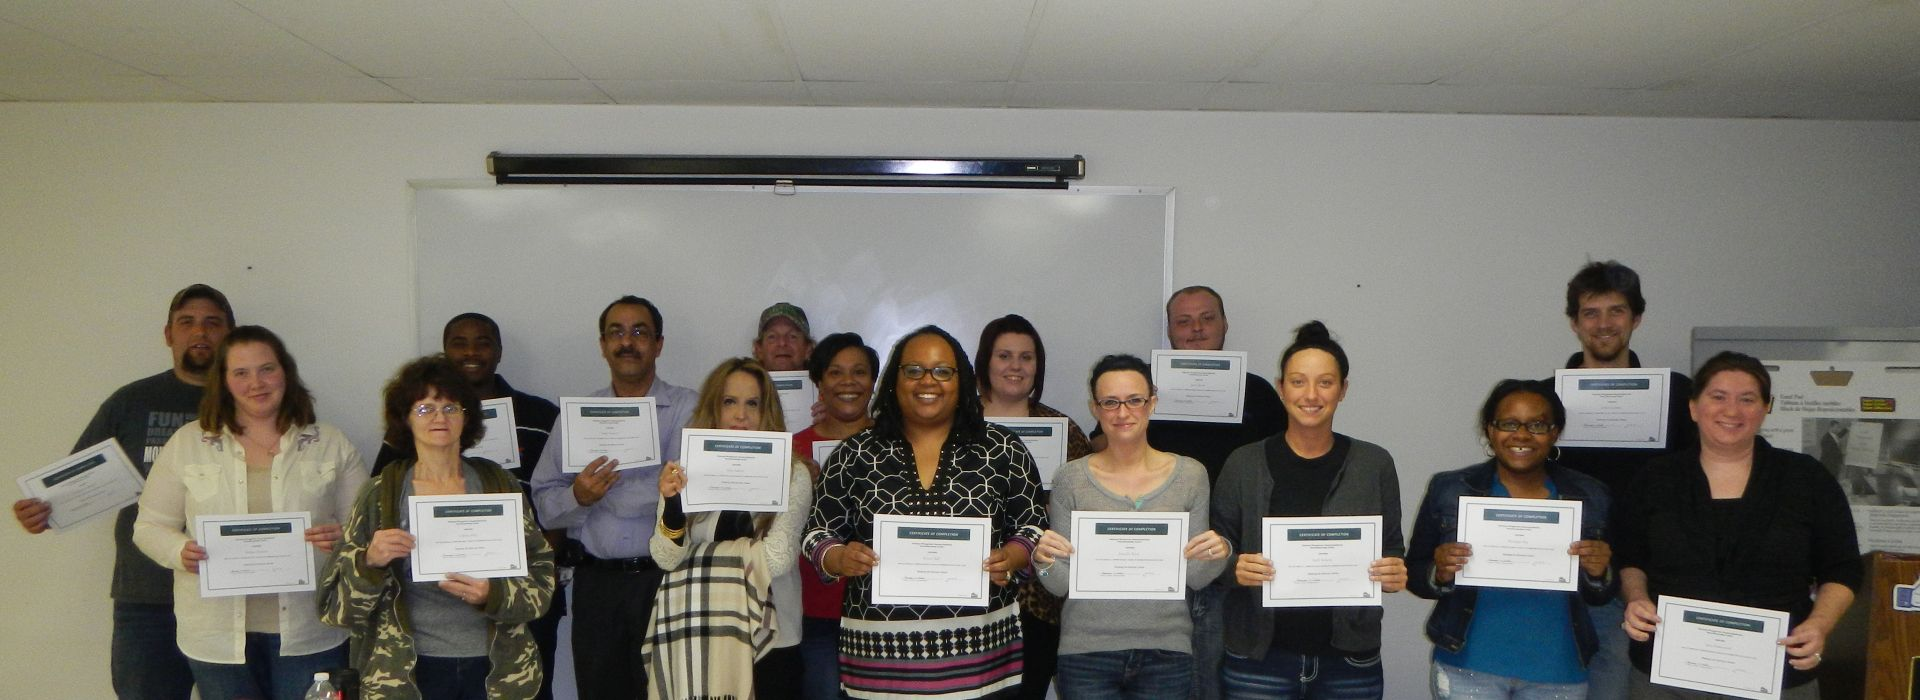 Homebuyer Education Class Graduates